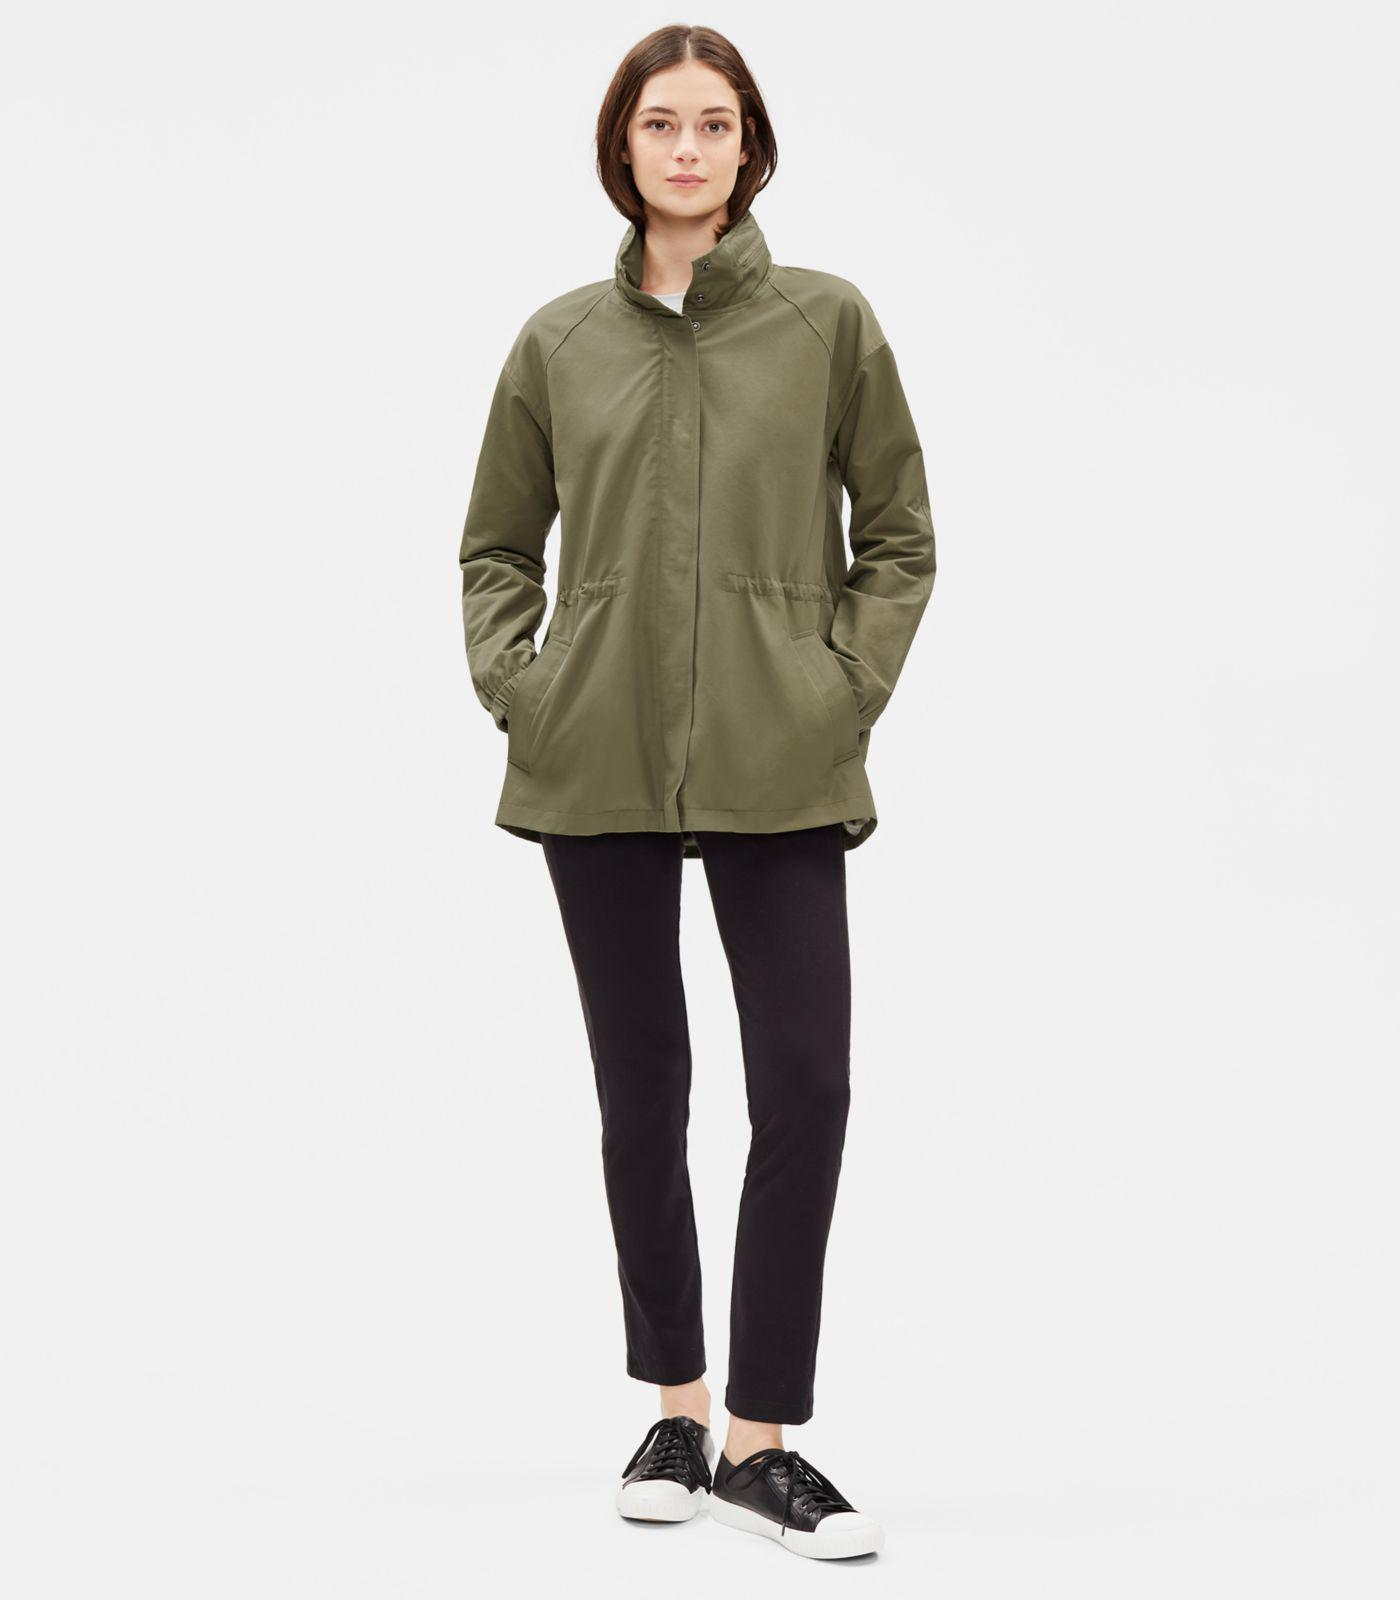 e6d5f54e0866 Eileen Fisher Organic Cotton Nylon Jacket With Hood in Green - Lyst